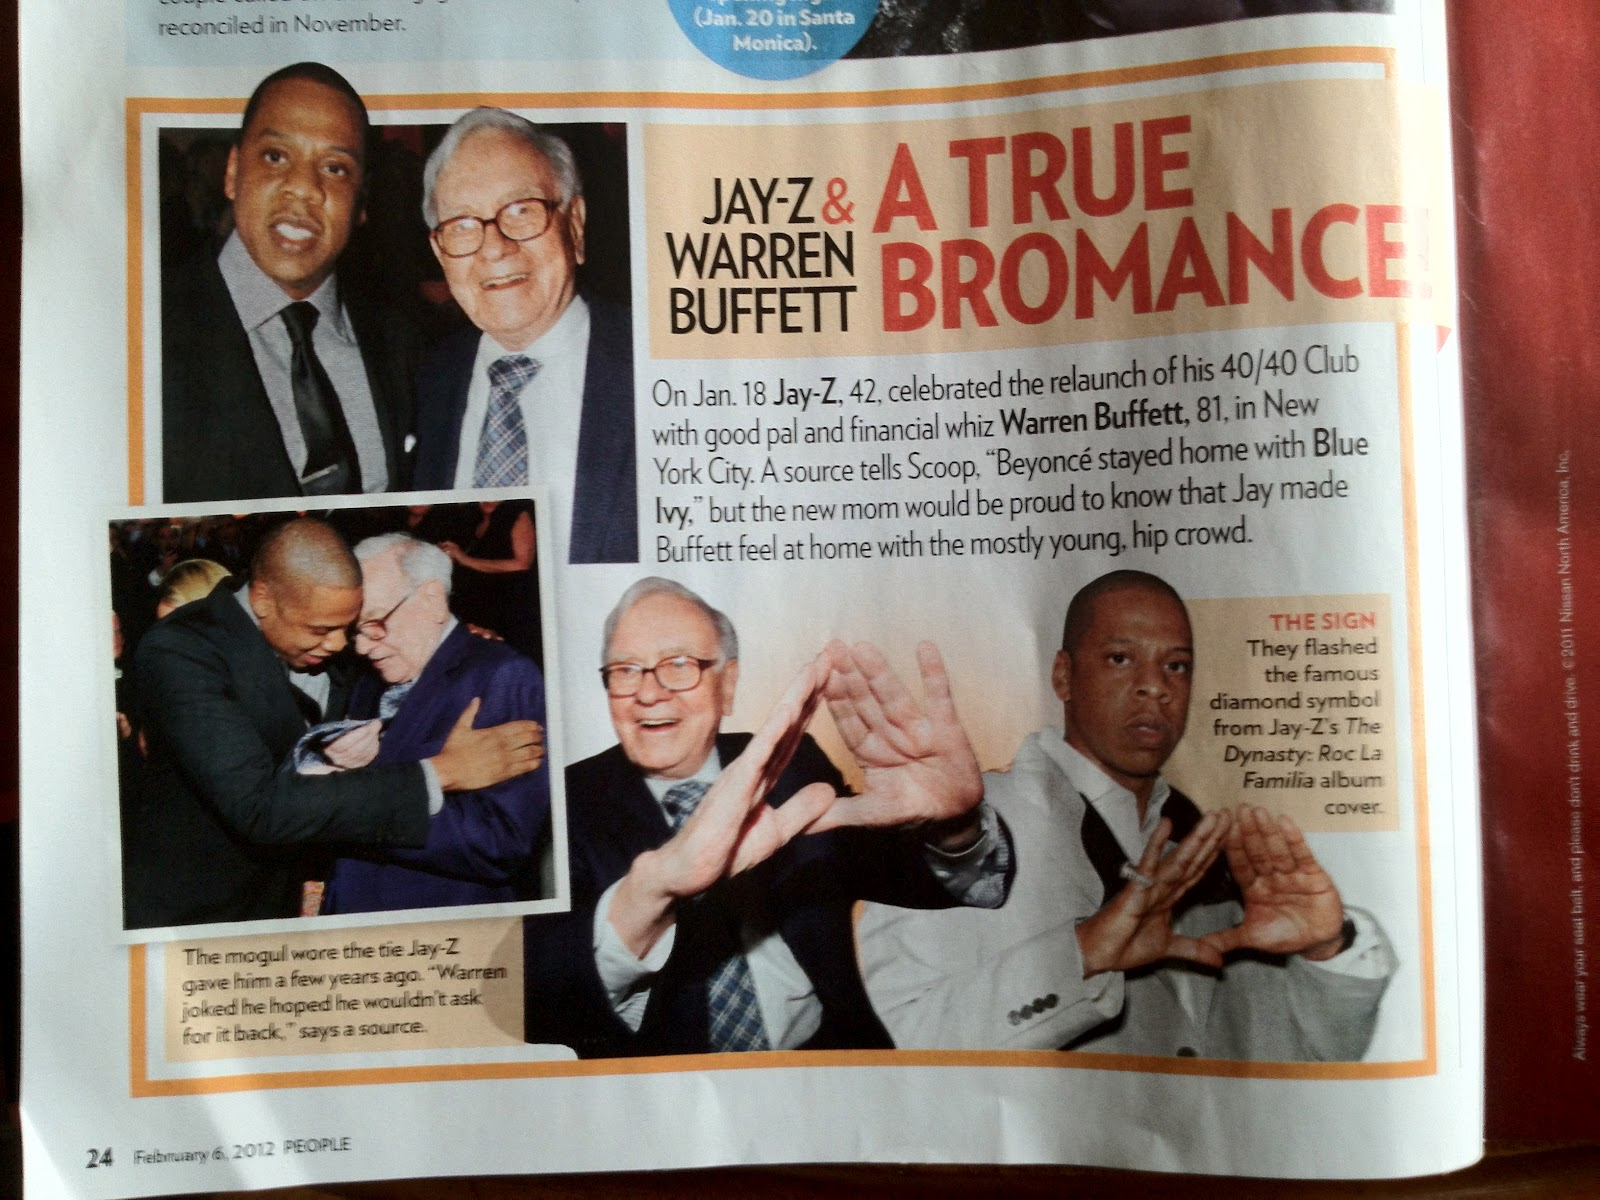 Warren Buffett drug trade of the Illuminati